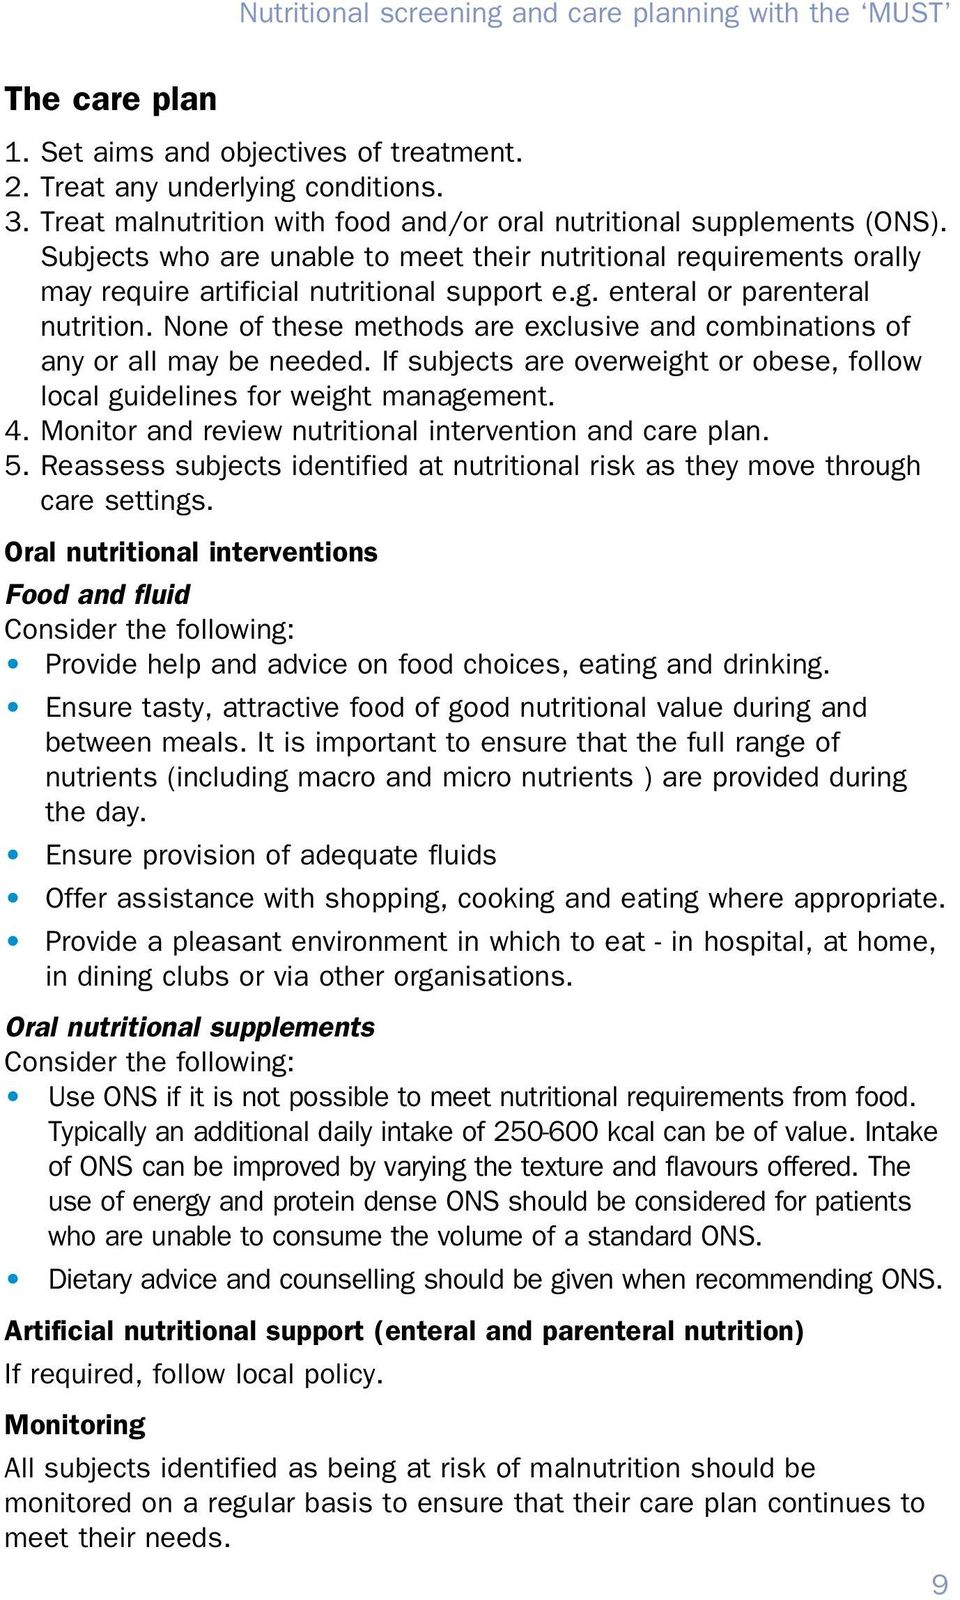 enteral or parenteral nutrition. None of these methods are exclusive and combinations of any or all may be needed. If subjects are overweight or obese, follow local guidelines for weight management.